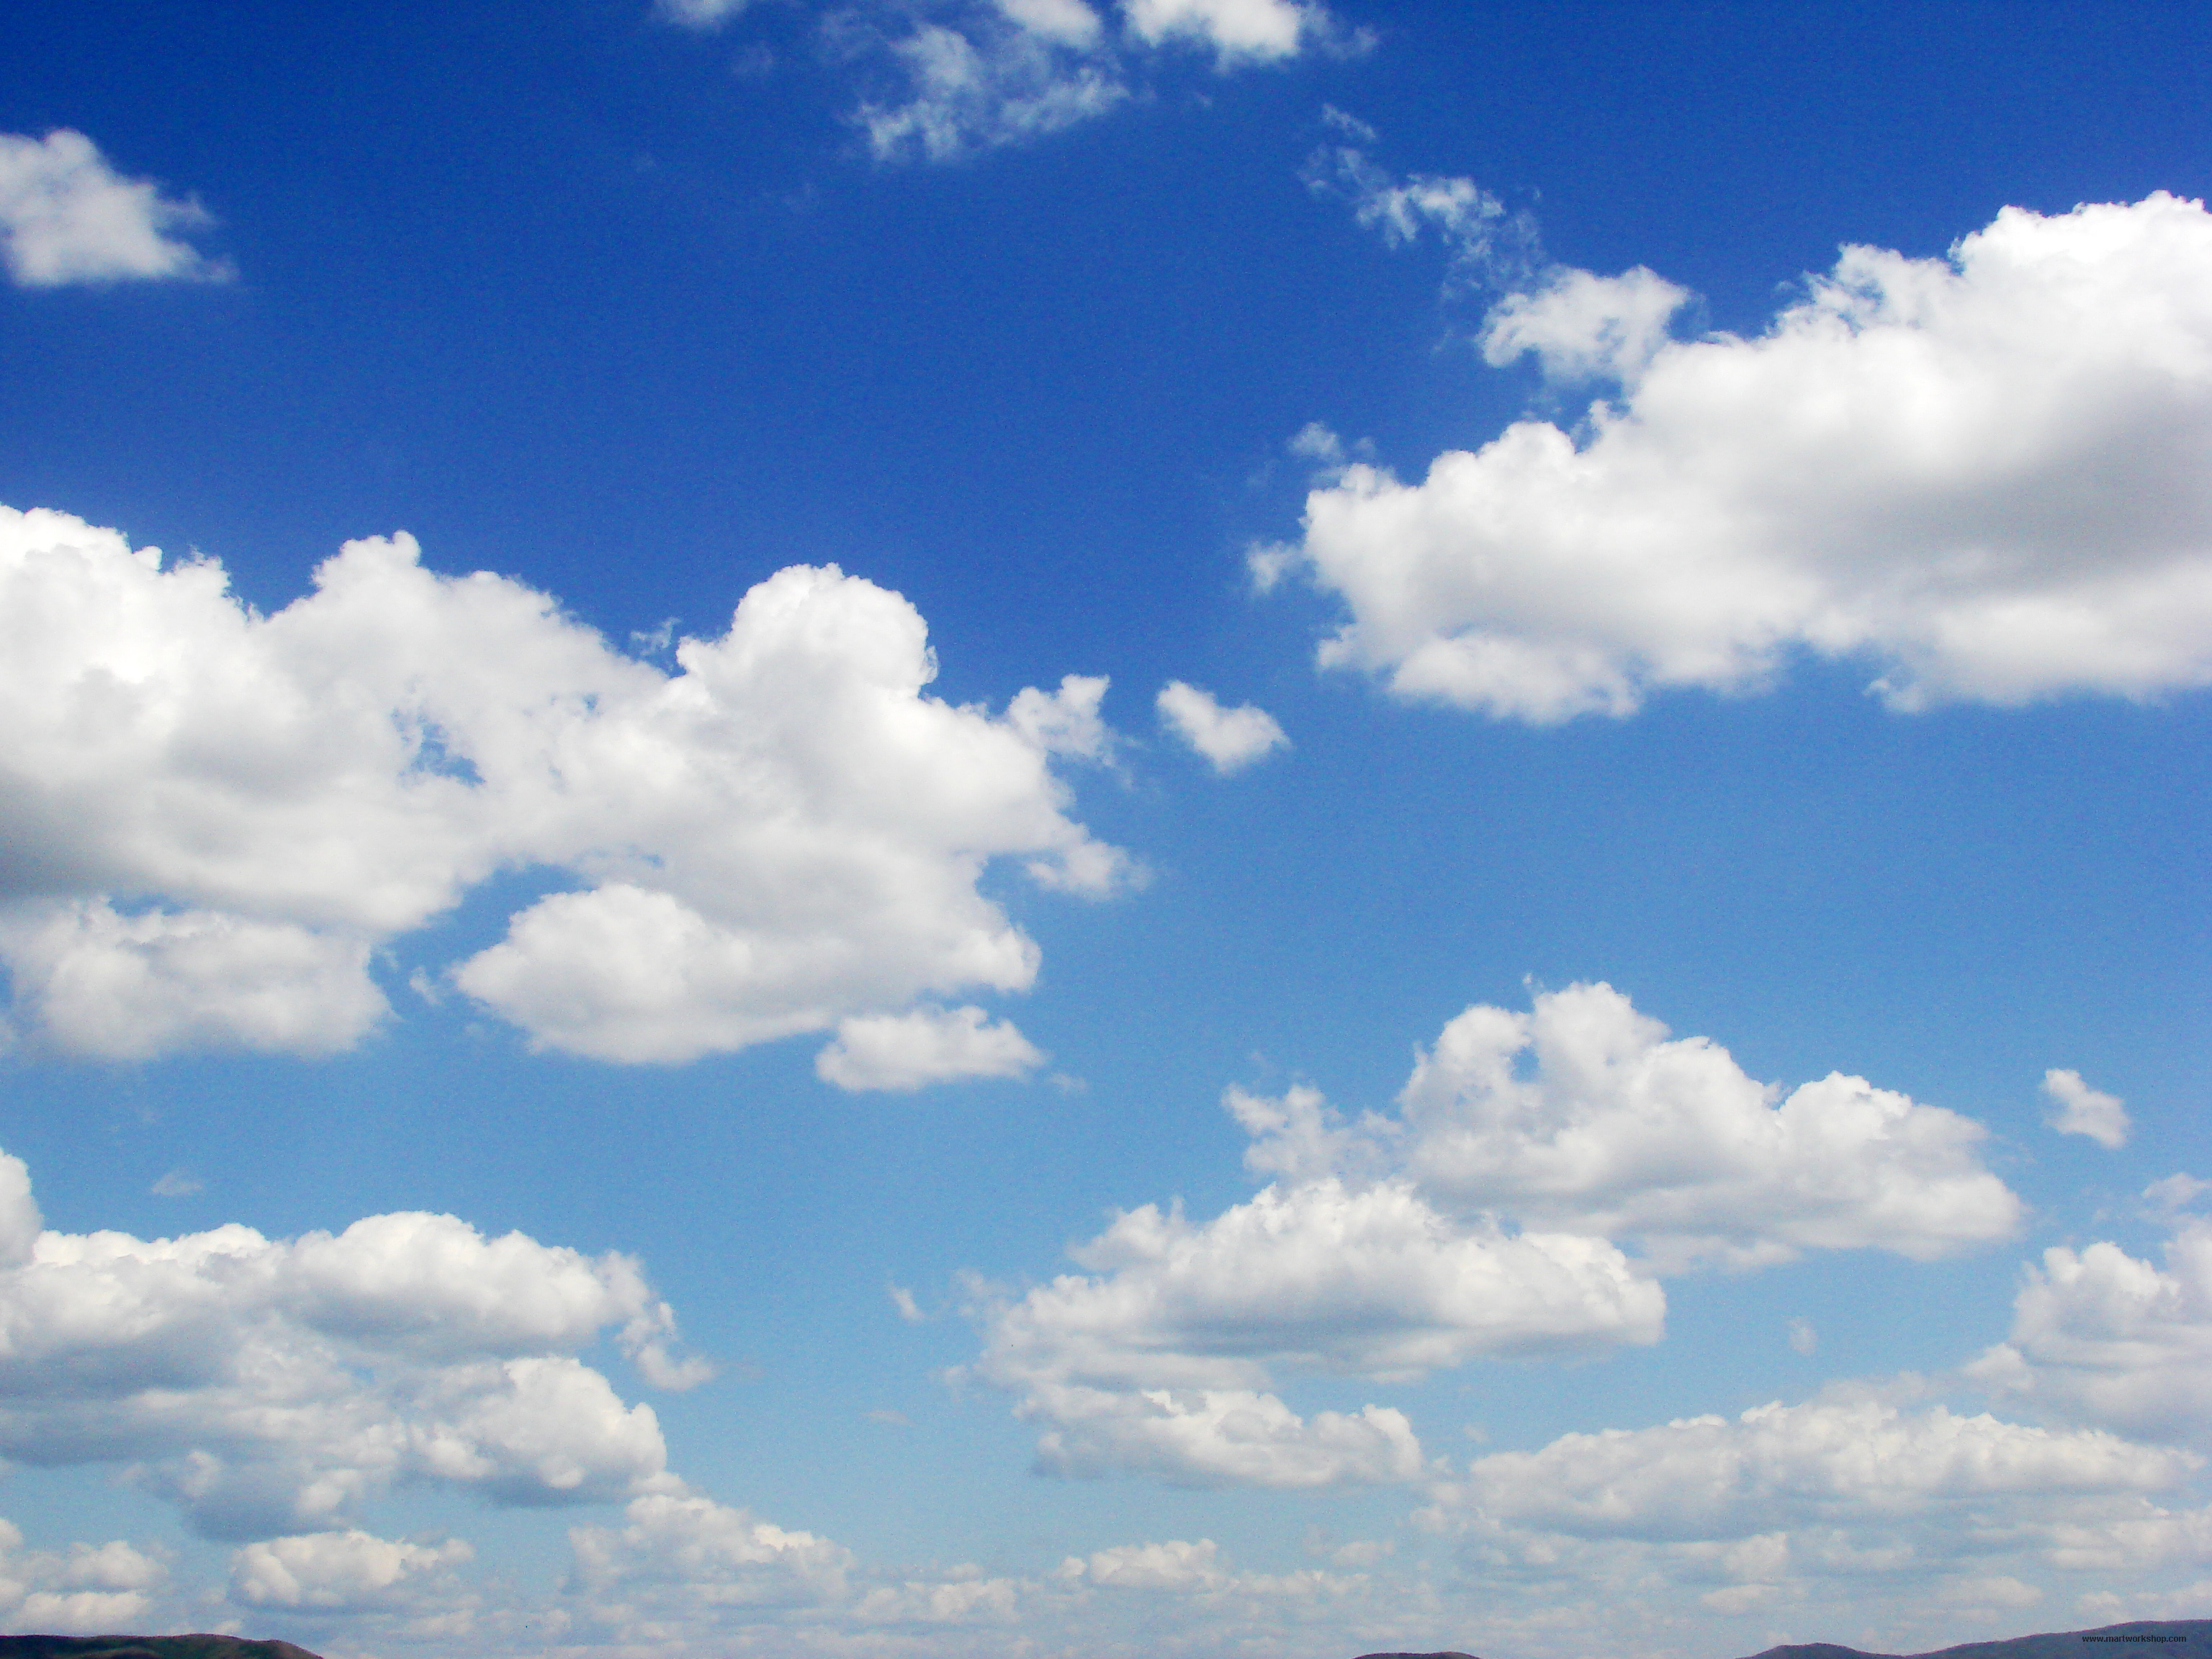 Sky Texture 24 Jpg Download Backgrounds For Powerpoint Templates Ppt Backgrounds